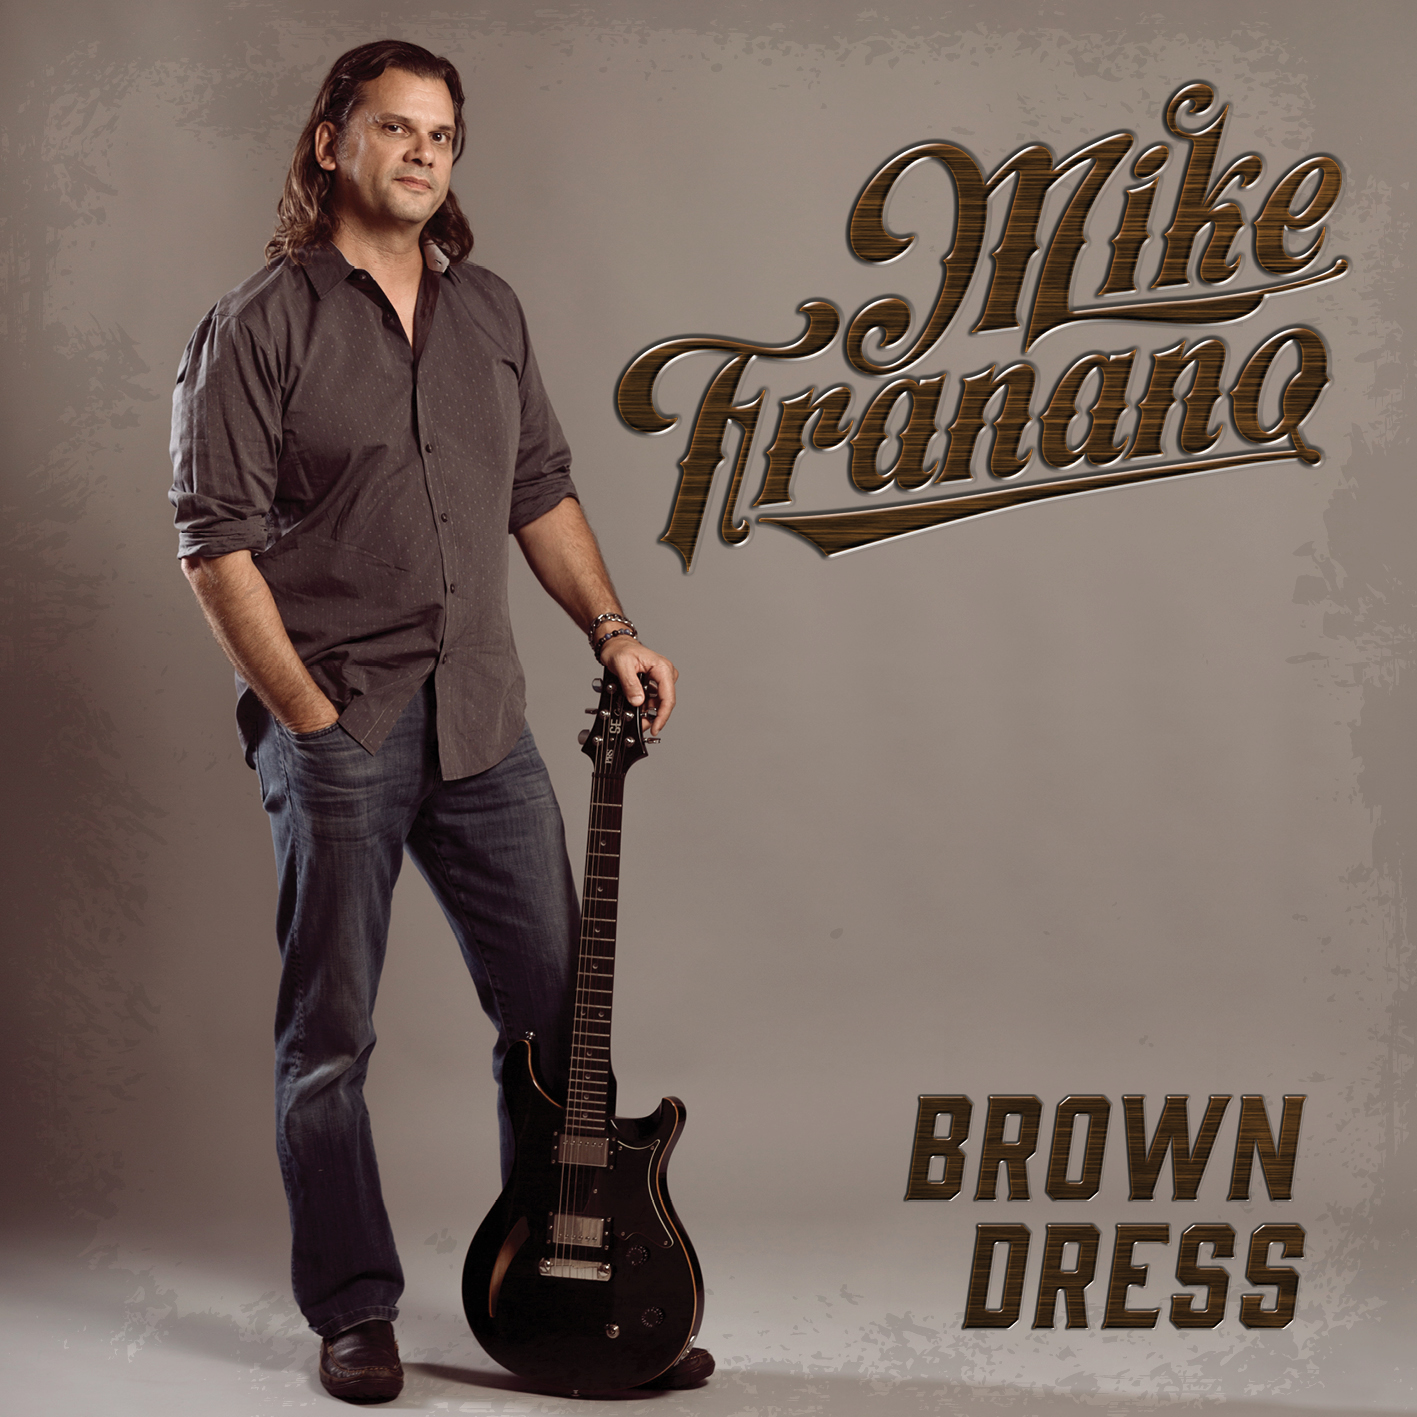 Mike Franano - Brown Dress